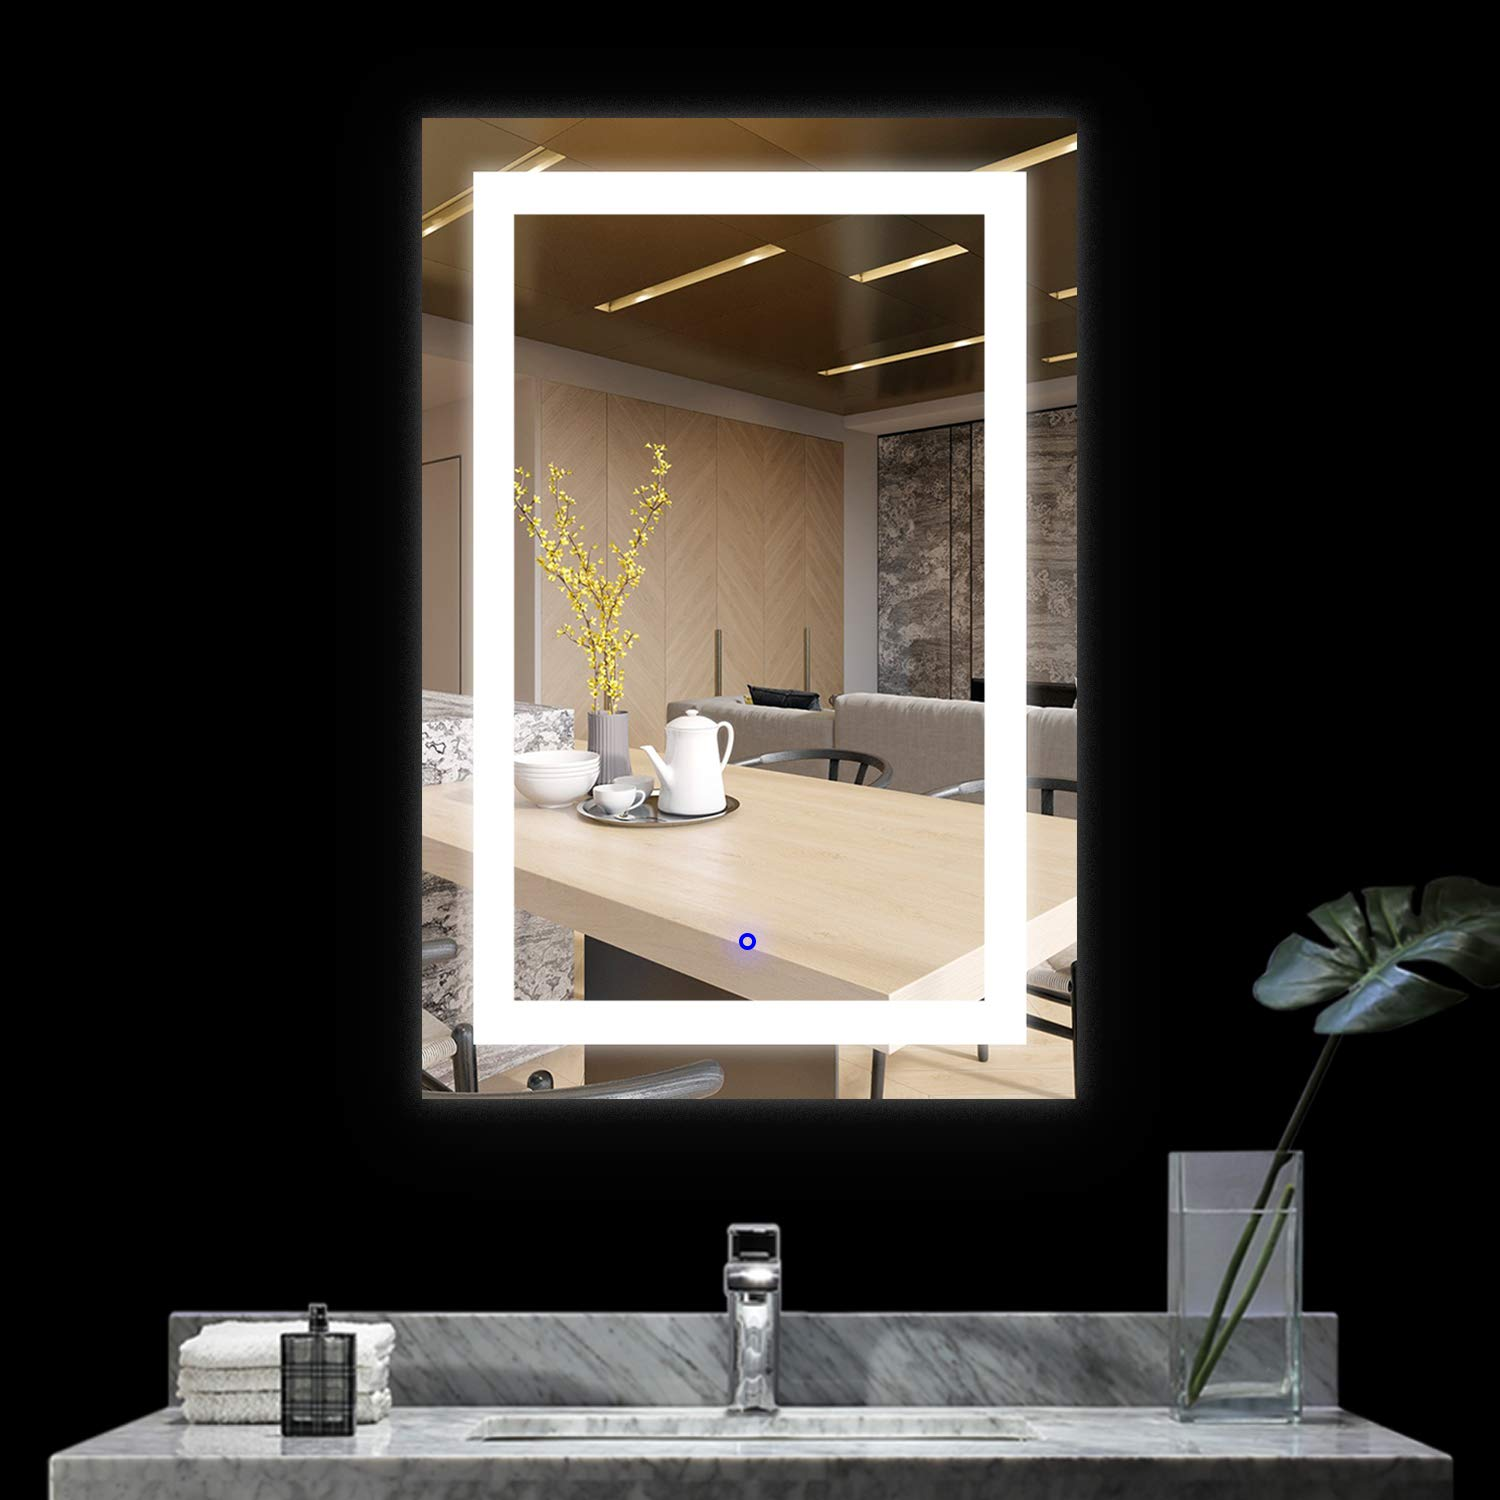 BATH KNOT LED Bathroom Makeup Vanity Mirror with Lights-Wall Mounted Backlit Mirror, Vanity Lighted Mirror with ETL Certification for Whole Mirror, 24 x 36 Inch